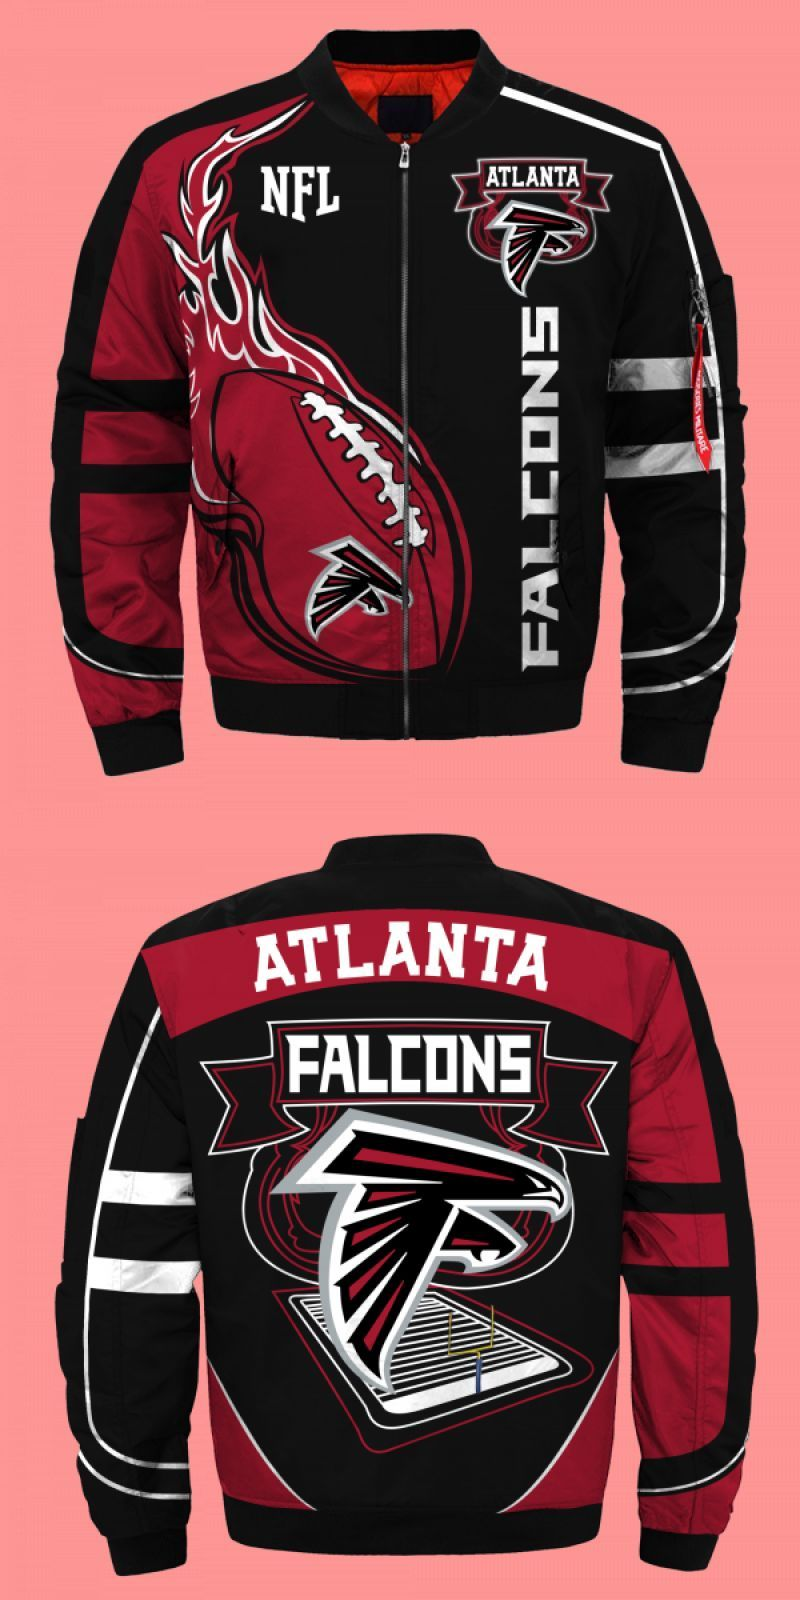 Atlanta Falcons Professional Nfl Team Overprint Limited Edition Streetwear Bomber Jacket Atlanta Falcons Professional Nf In 2020 Bomber Jacket Jackets Street Wear